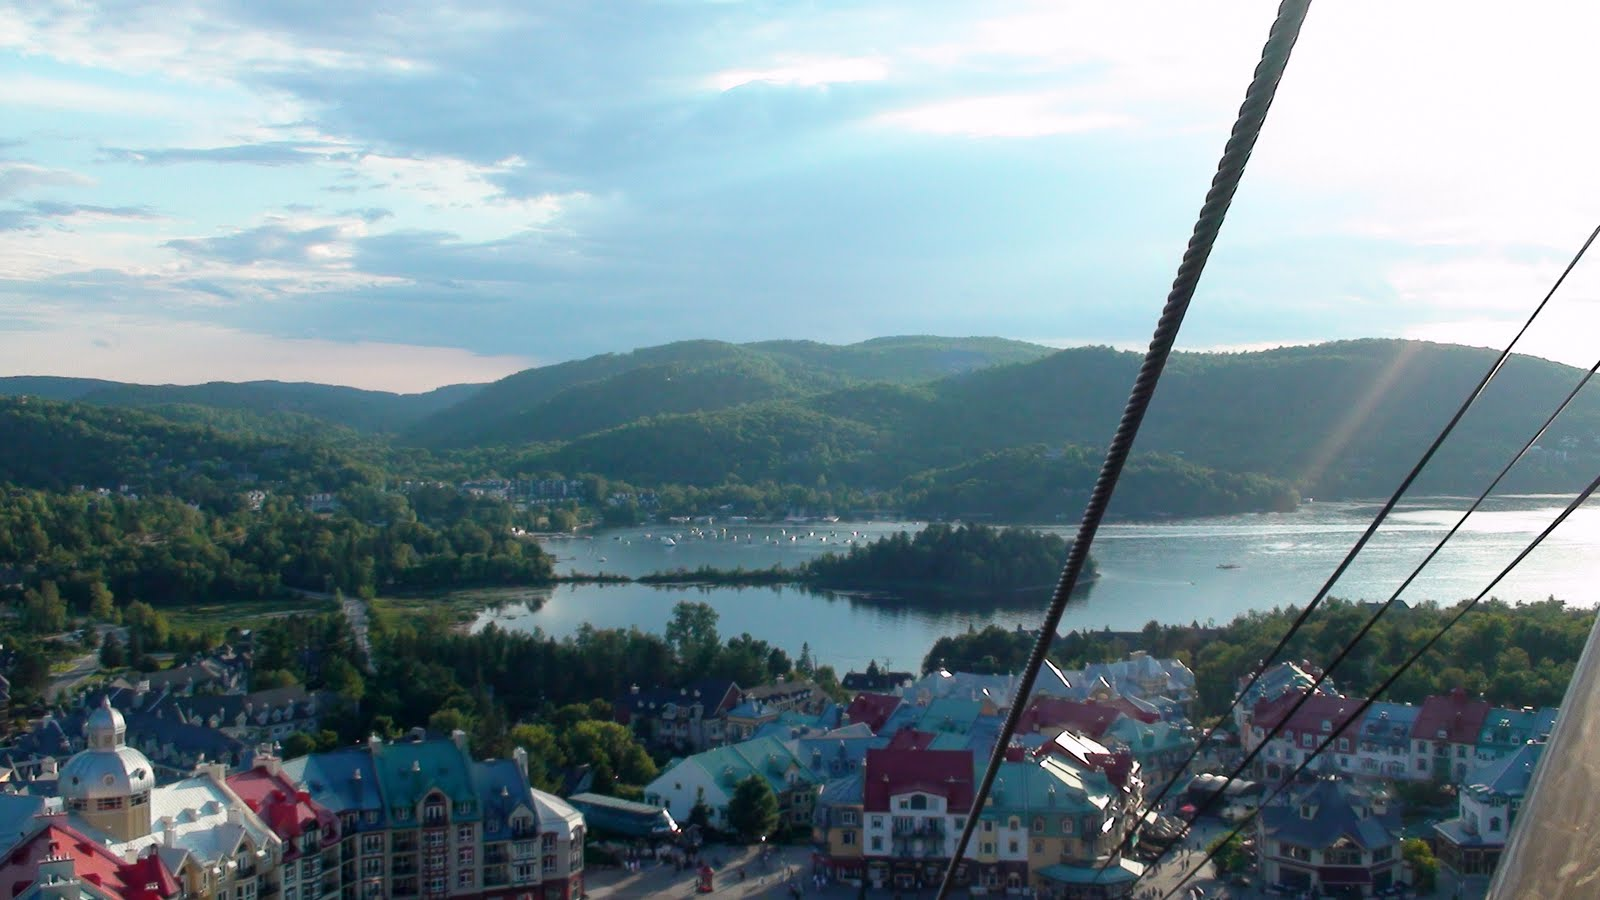 Taking the gondola up the mountain. Mont Tremblant village below.